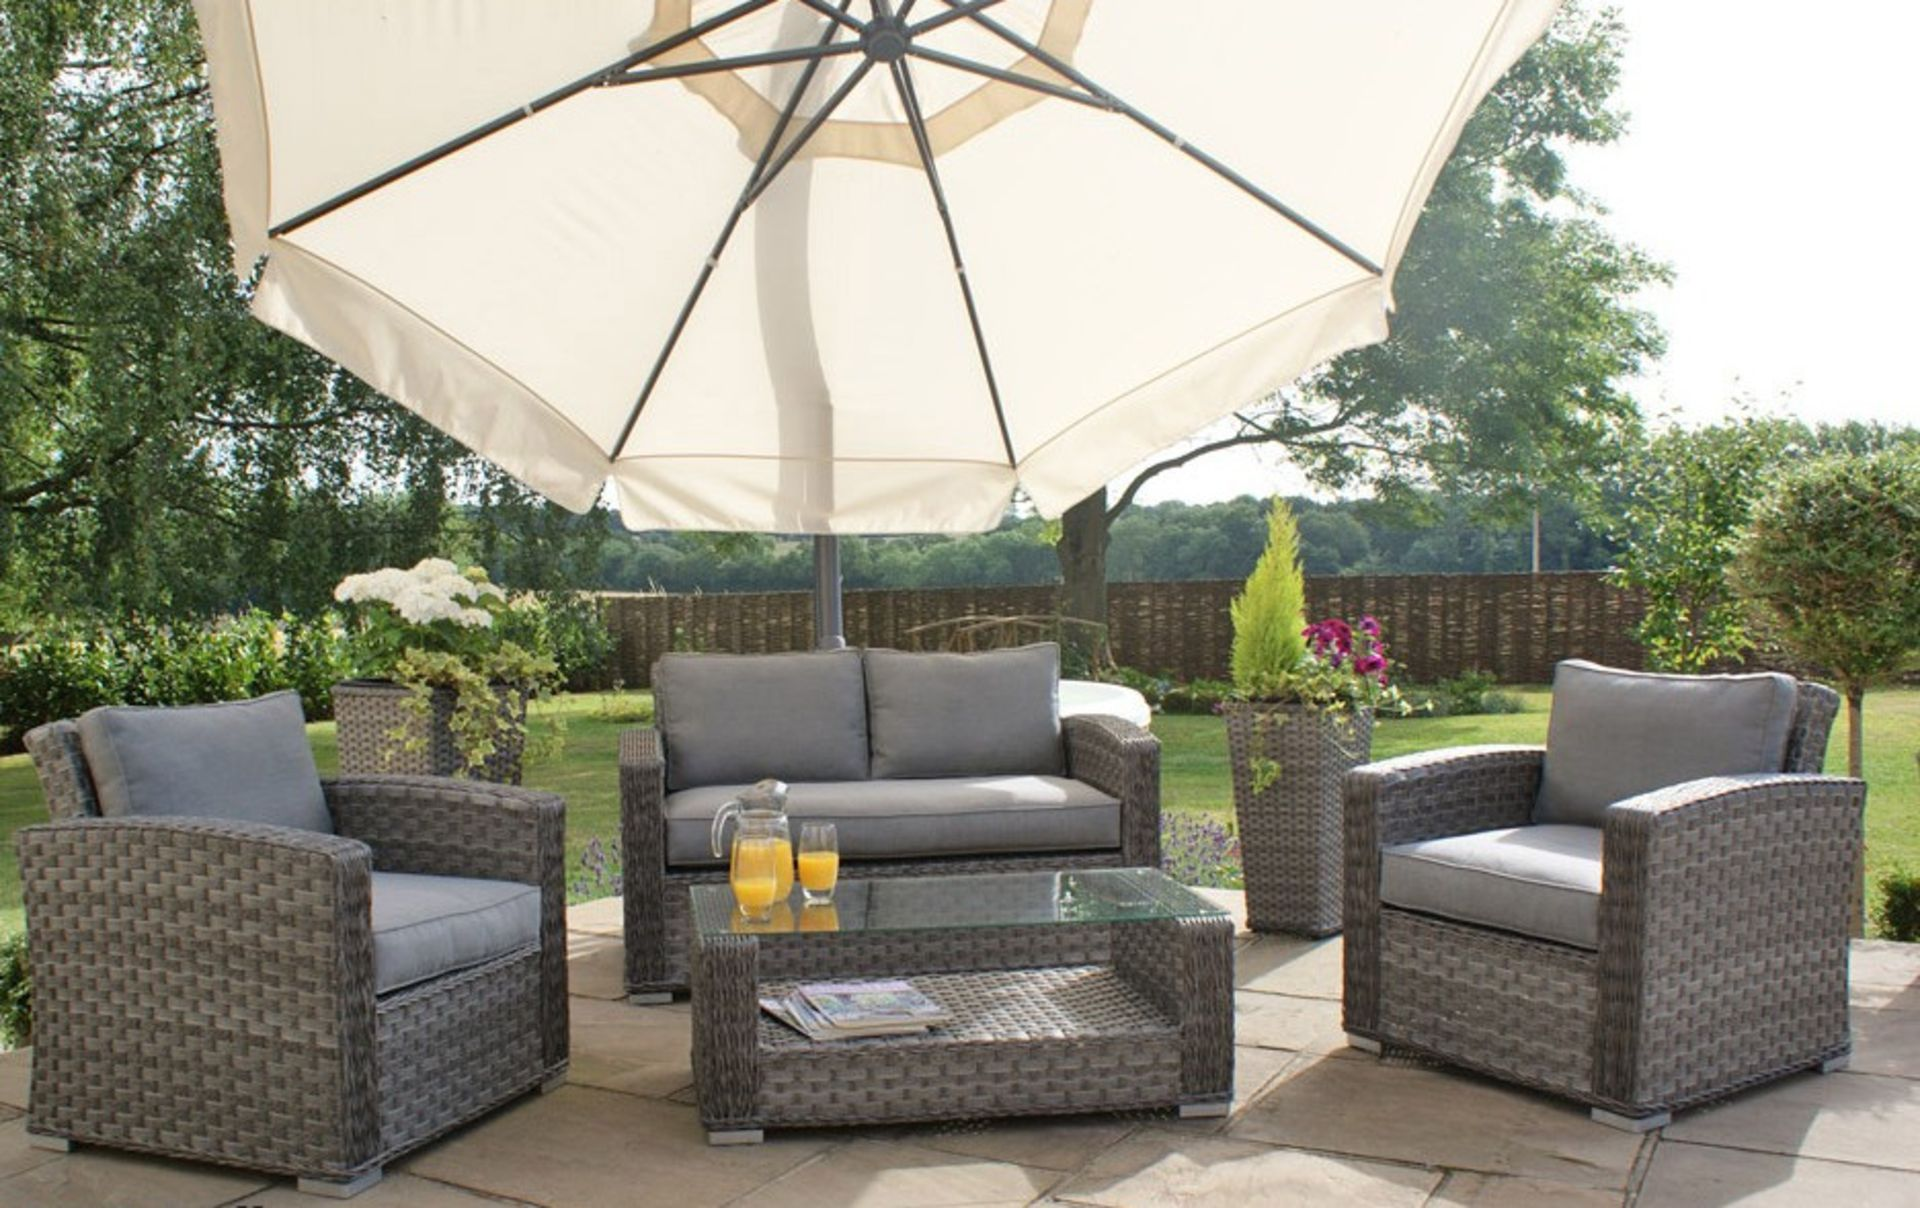 + VAT Brand New Chelsea Garden Company 4-Piece Grey Rattan Outdoor Sofa Set With Grey Cushions -